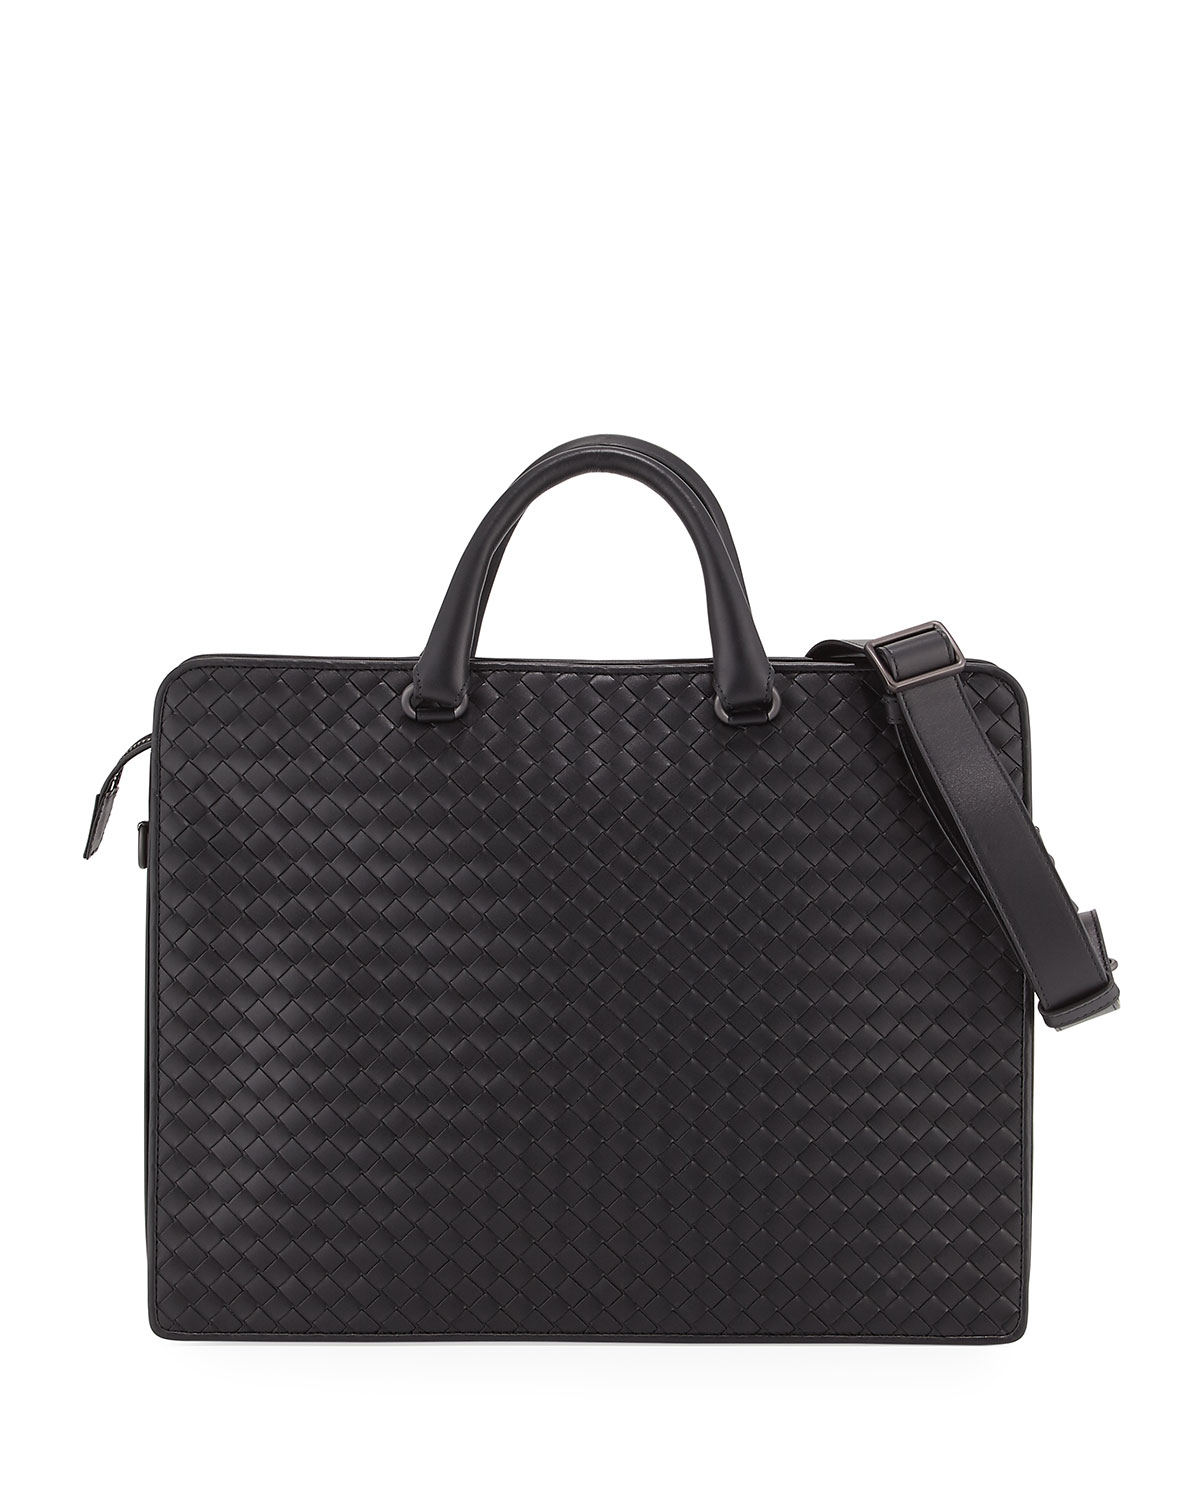 18699ca4628a Bottega Veneta Intrecciato Calf Leather Briefcase